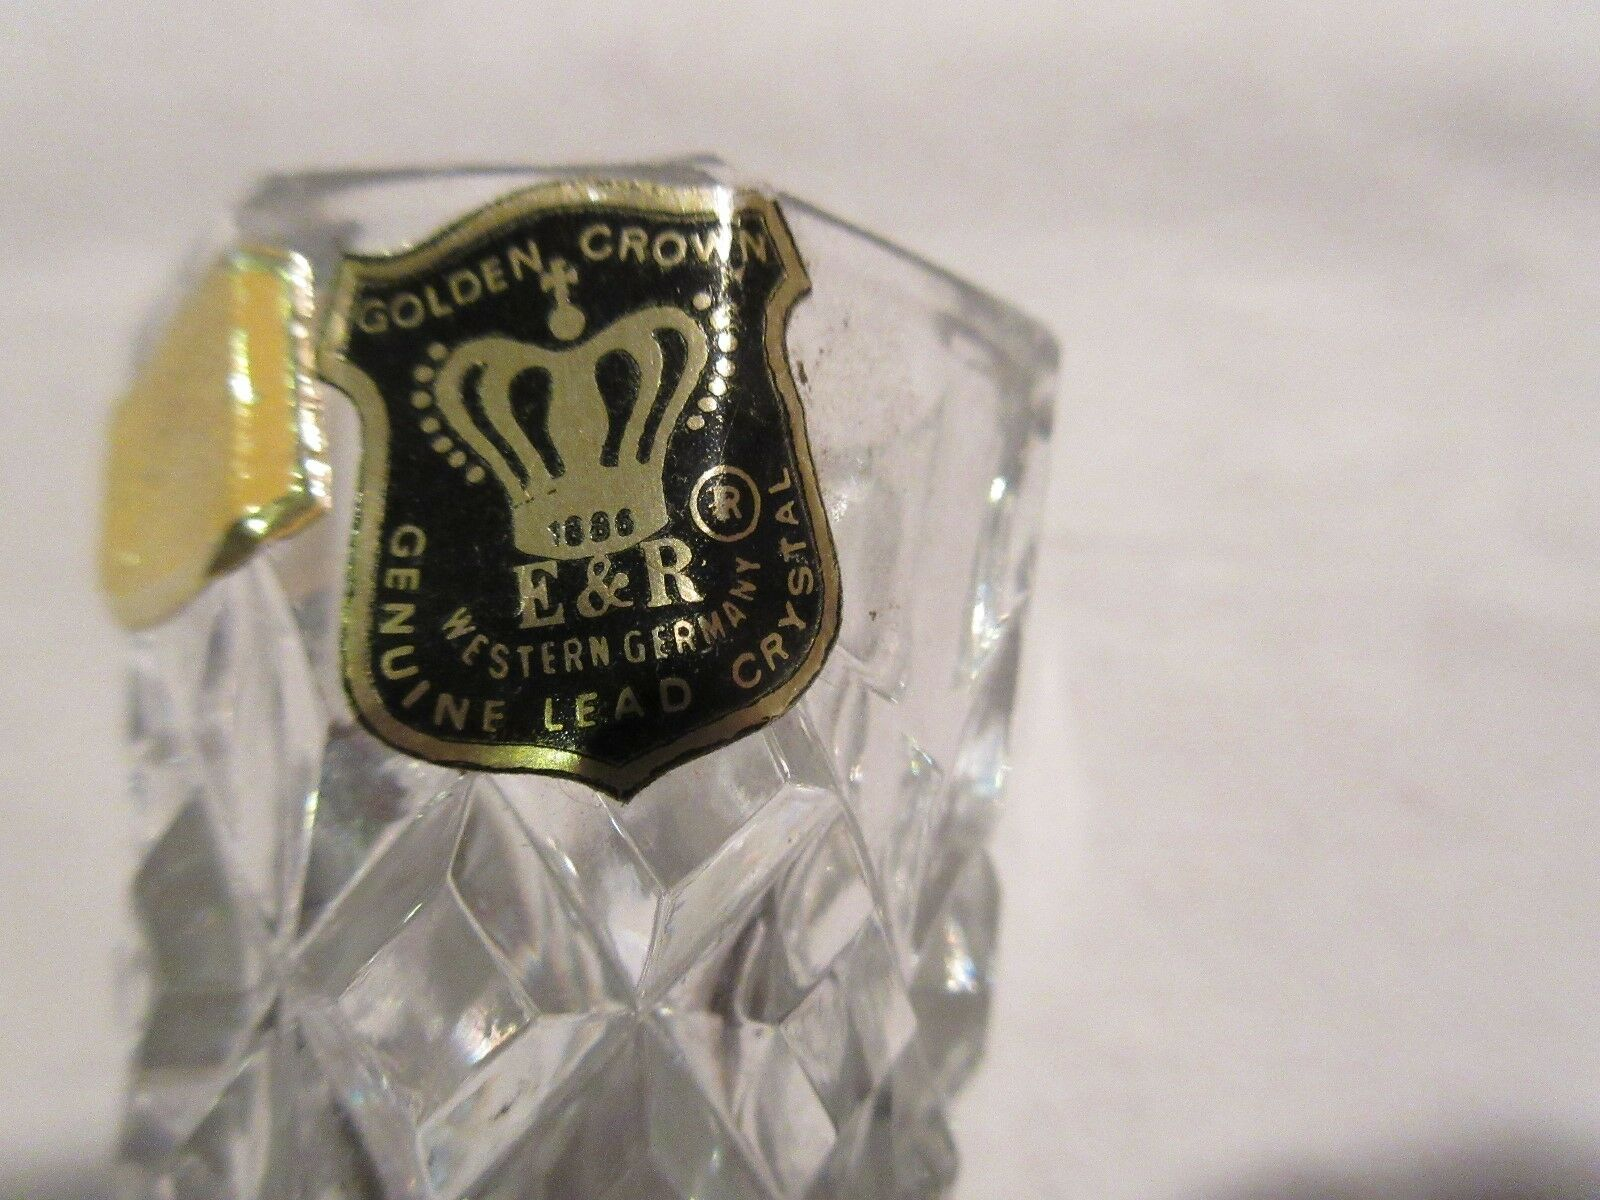 "Golden Crown, E & R LEAD CRYSTAL VASE ,1986 , 2 1/2""Hig"